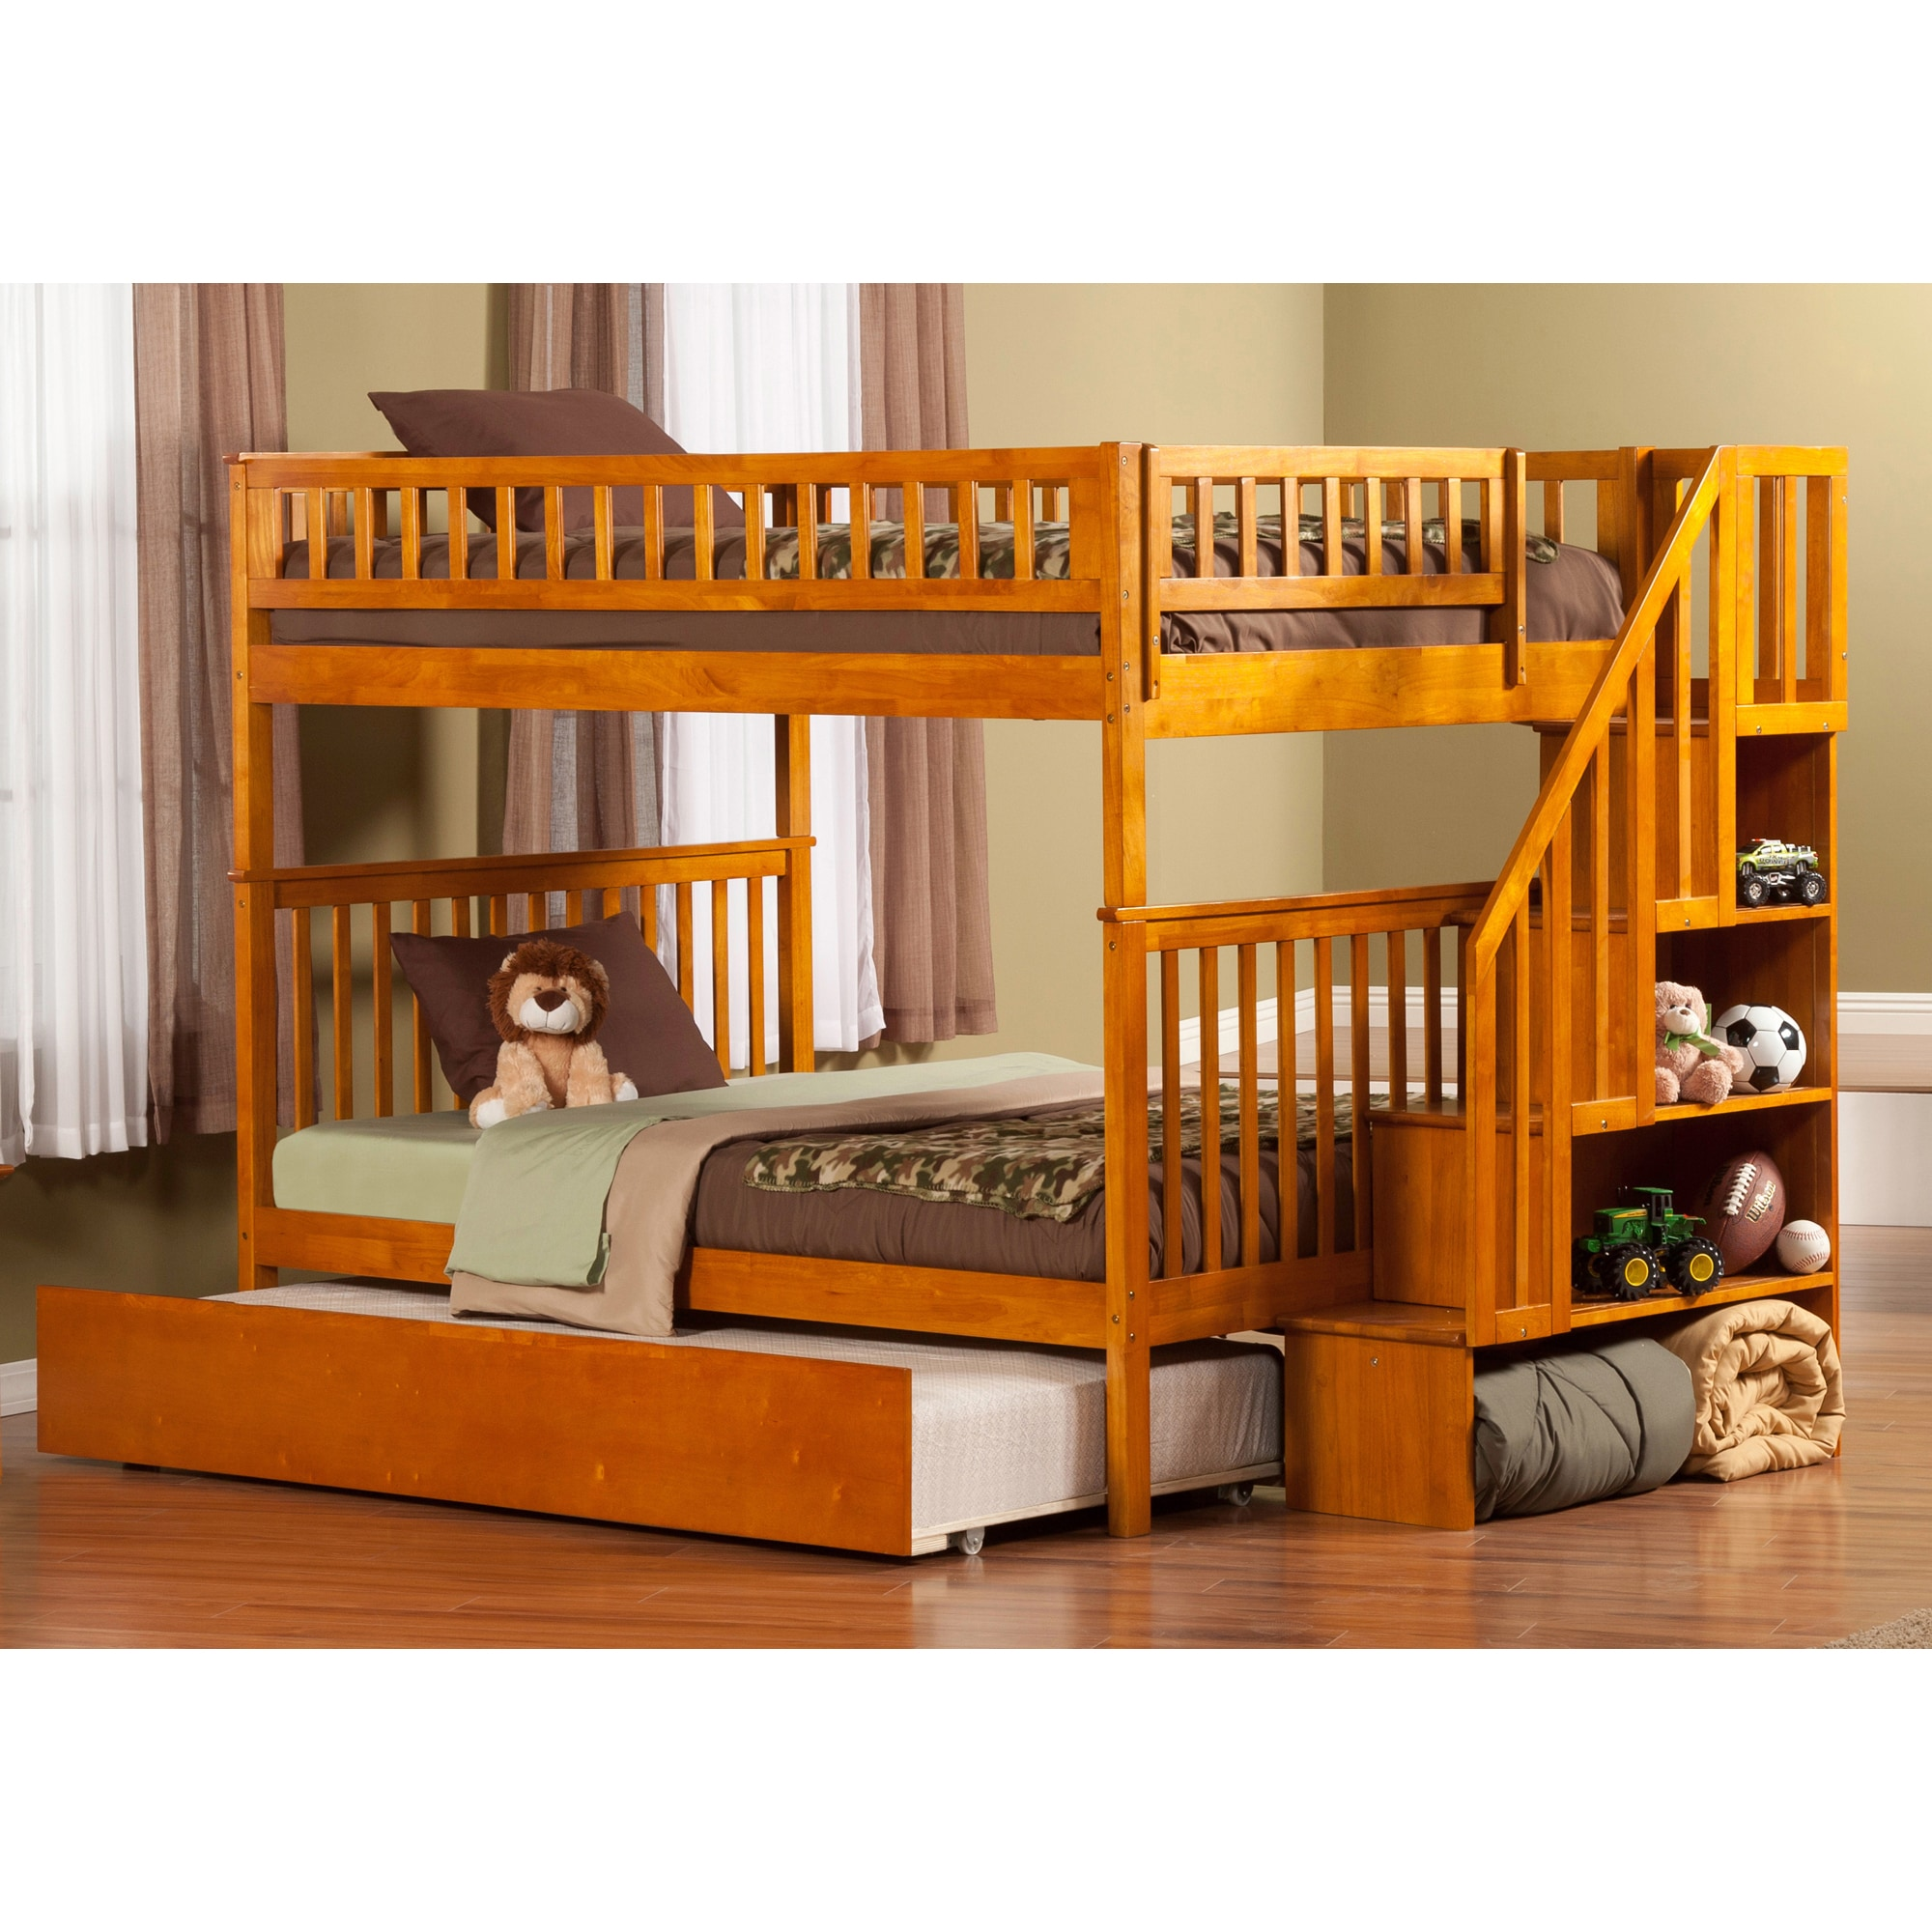 Atlantic Furniture Woodland Staircase Bunk Bed Full over ...